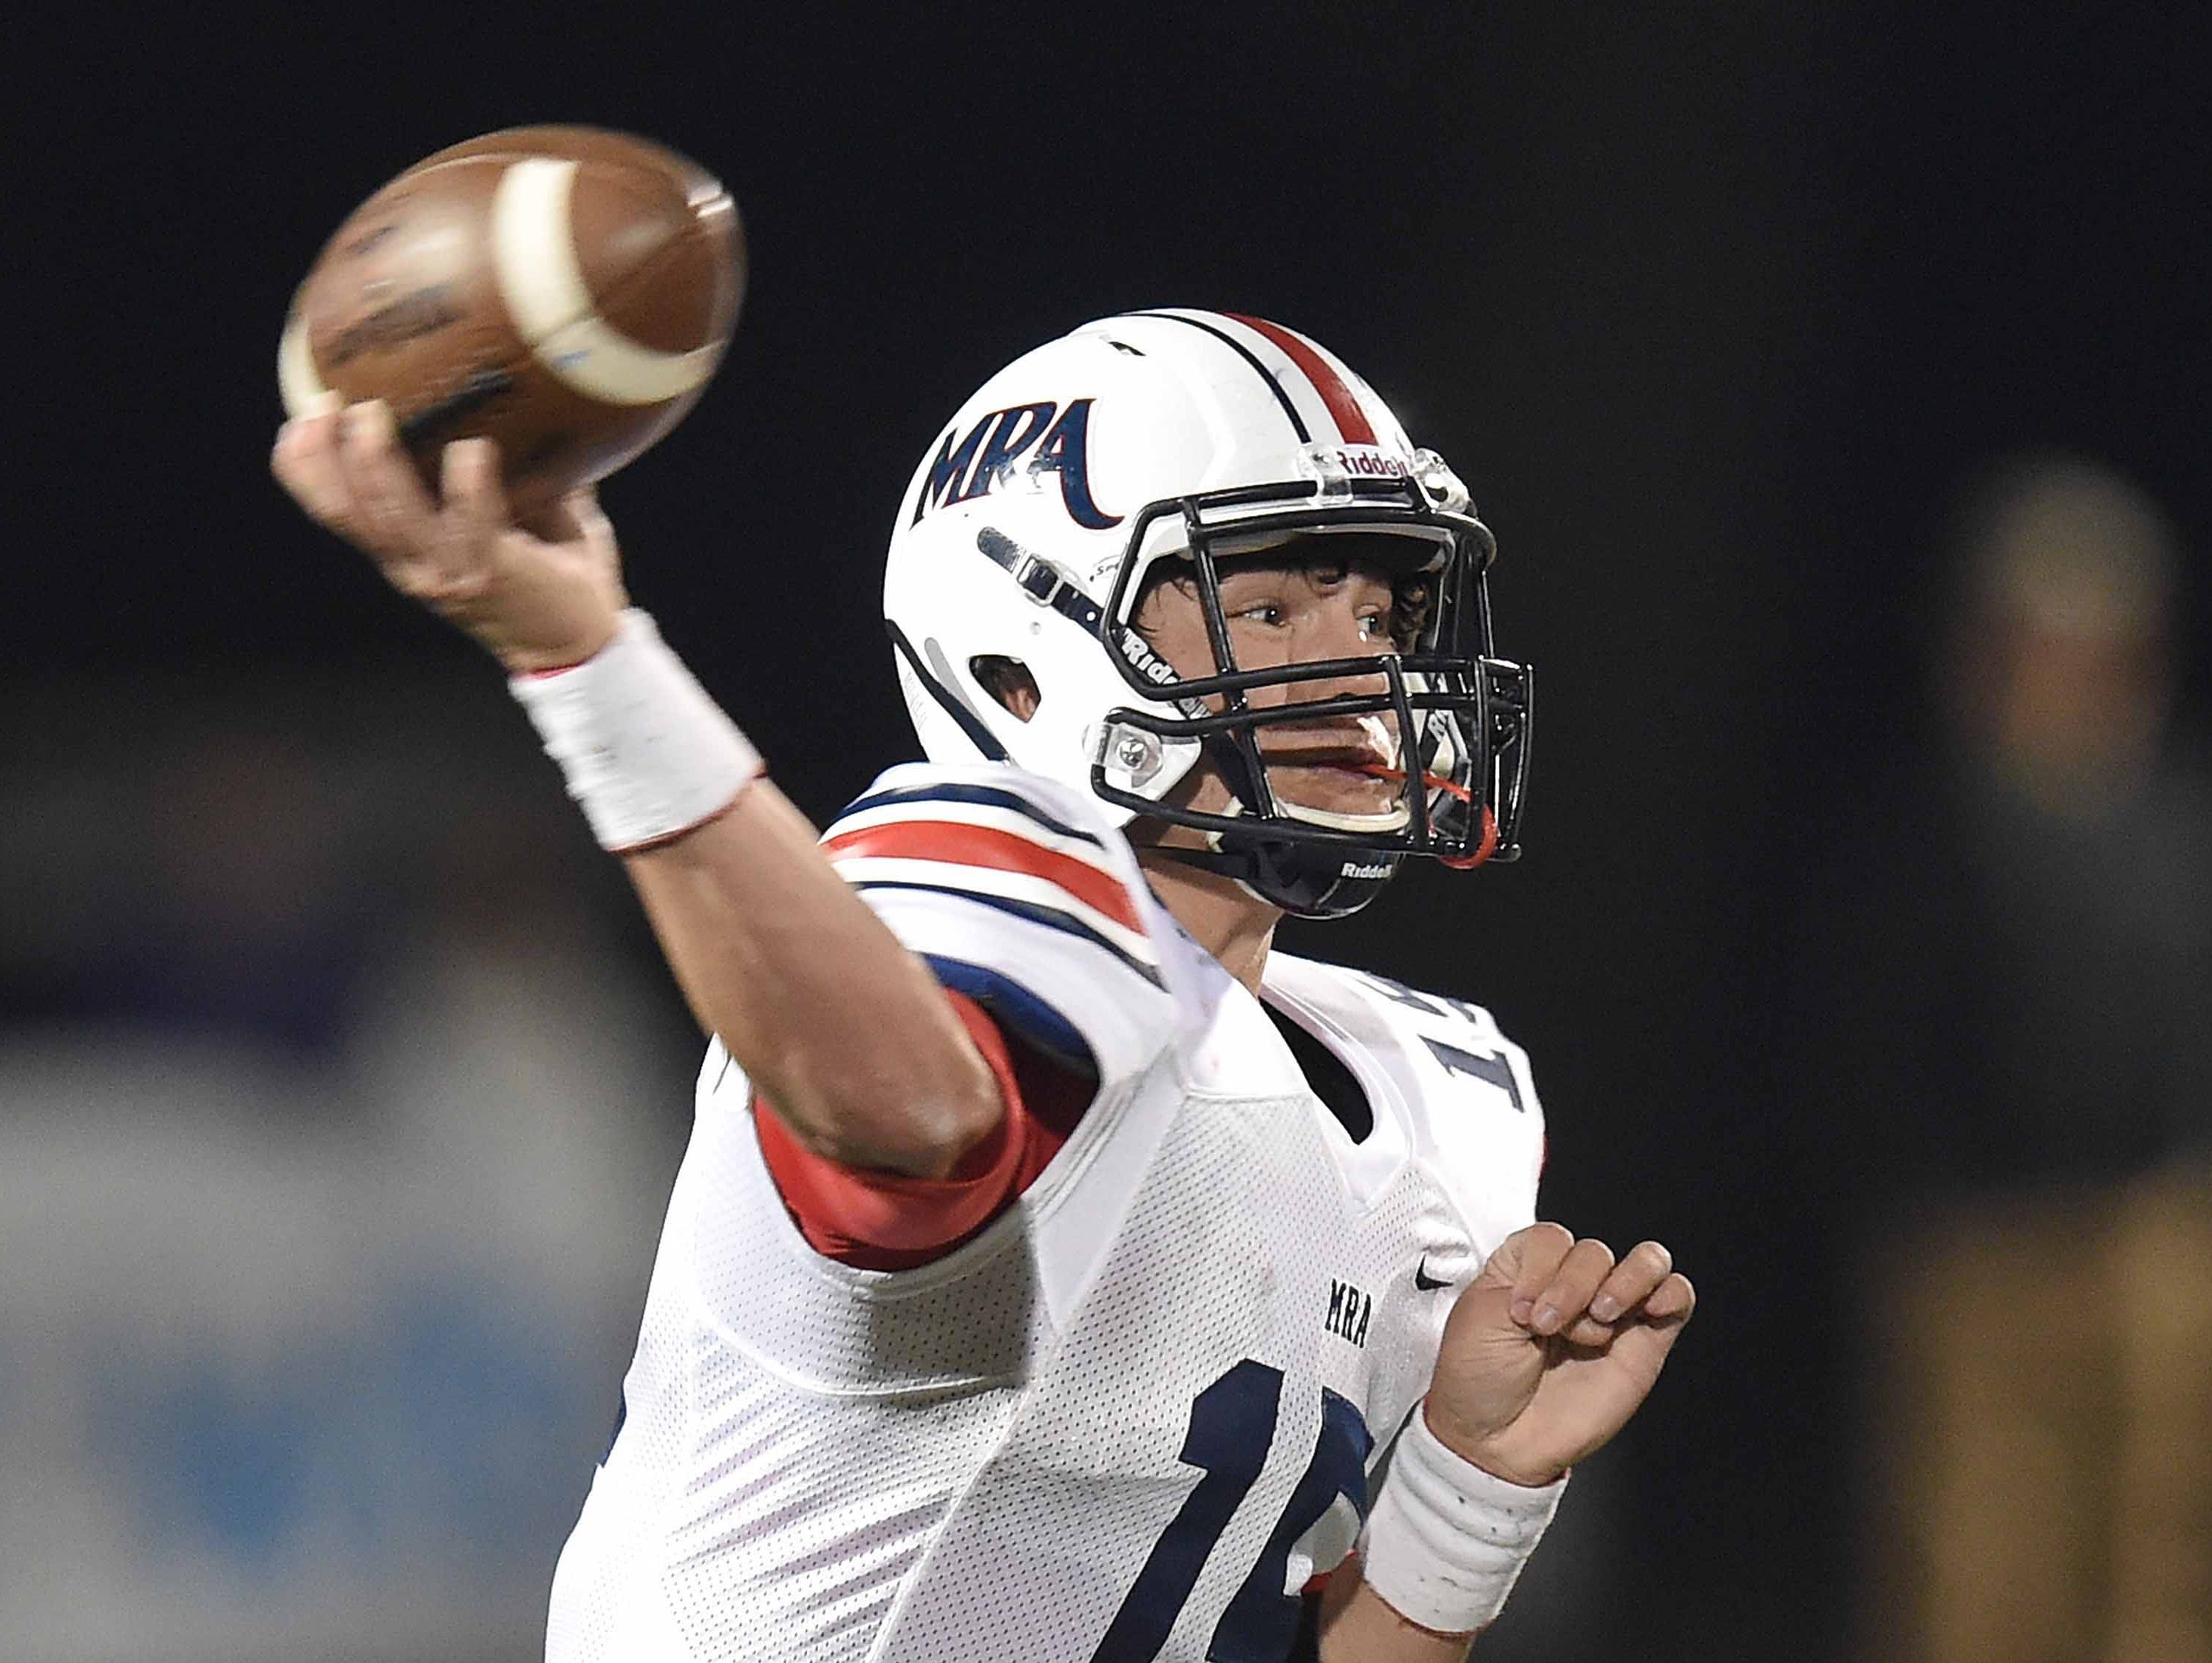 MRA quarterback Hayden Davis will likely miss the remainder of the 2015 season with an ACL injury